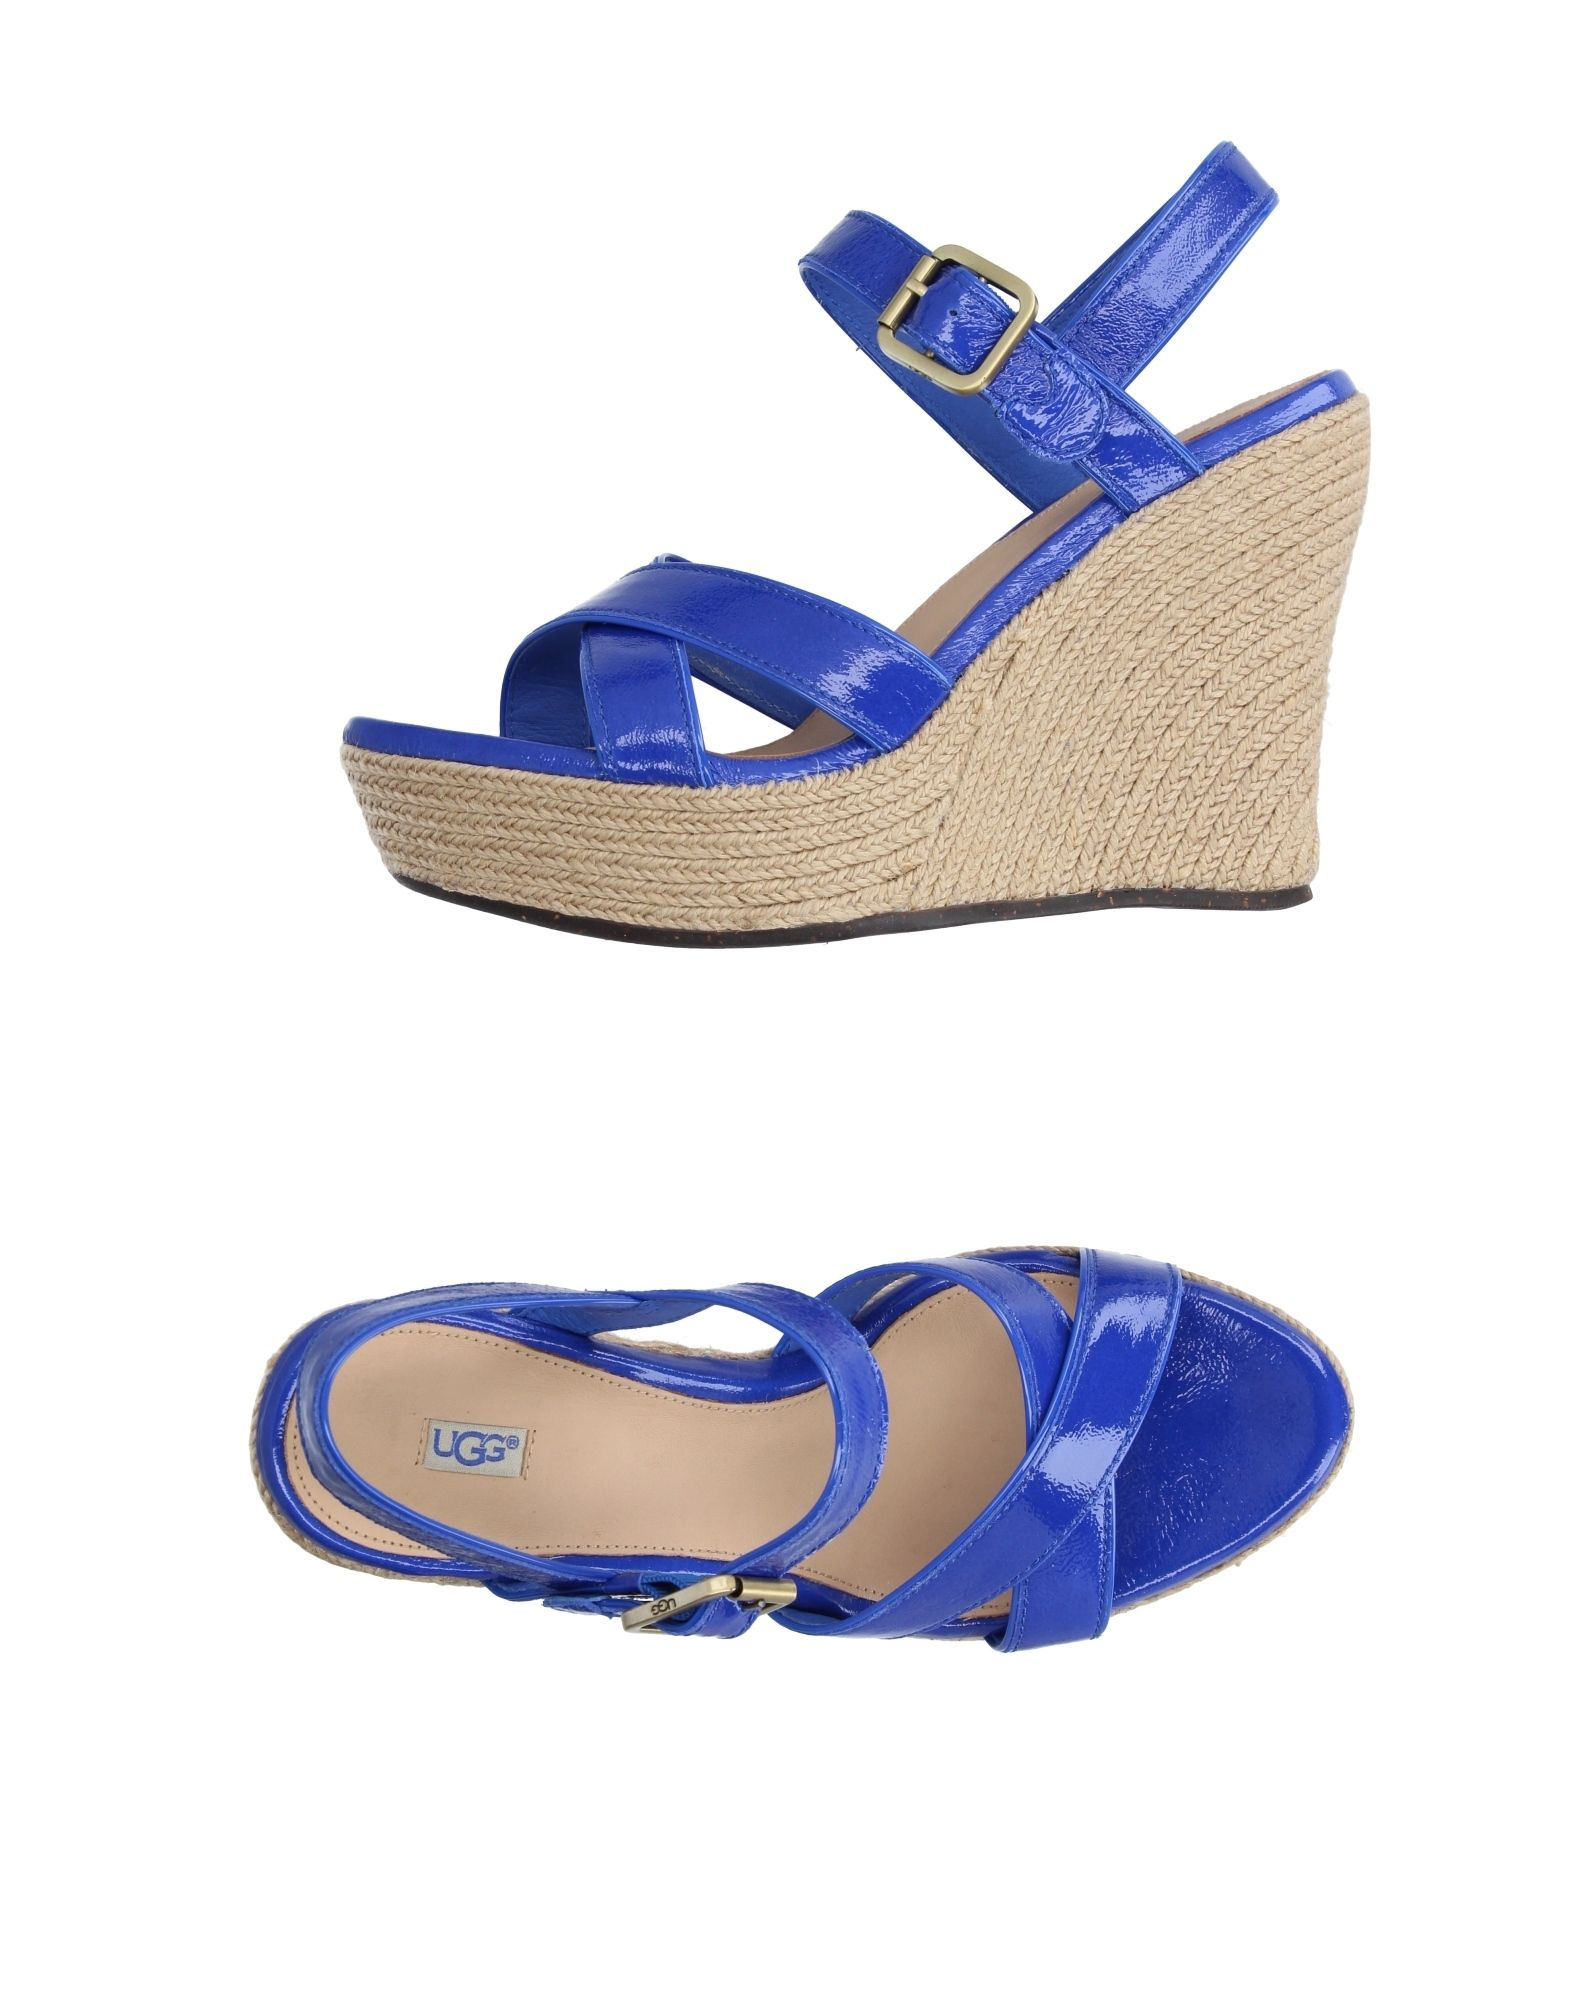 Ugg Australia Sandals - Women Ugg Australia Sandals online on YOOX Latvia - 11230611PB